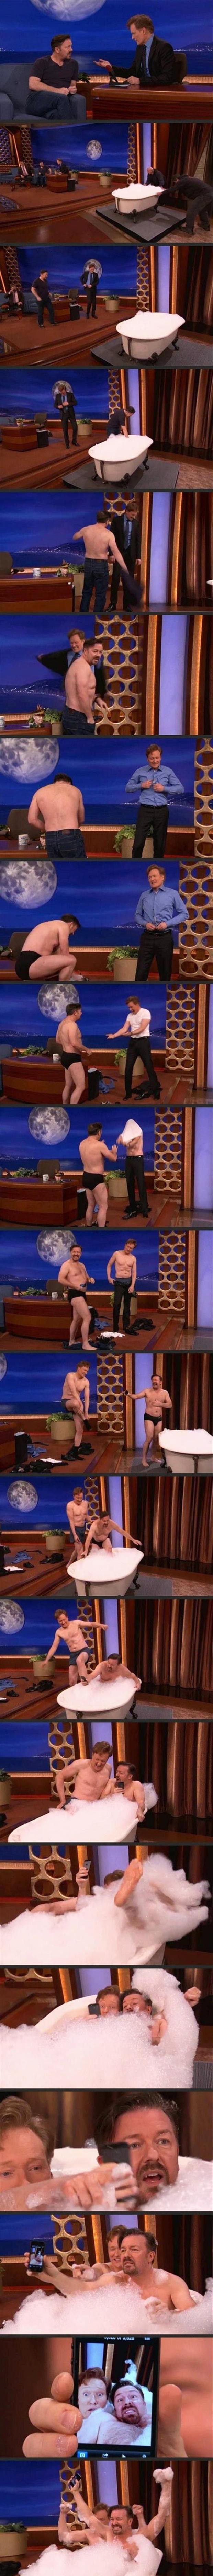 the conan o brien taking a bath on the show